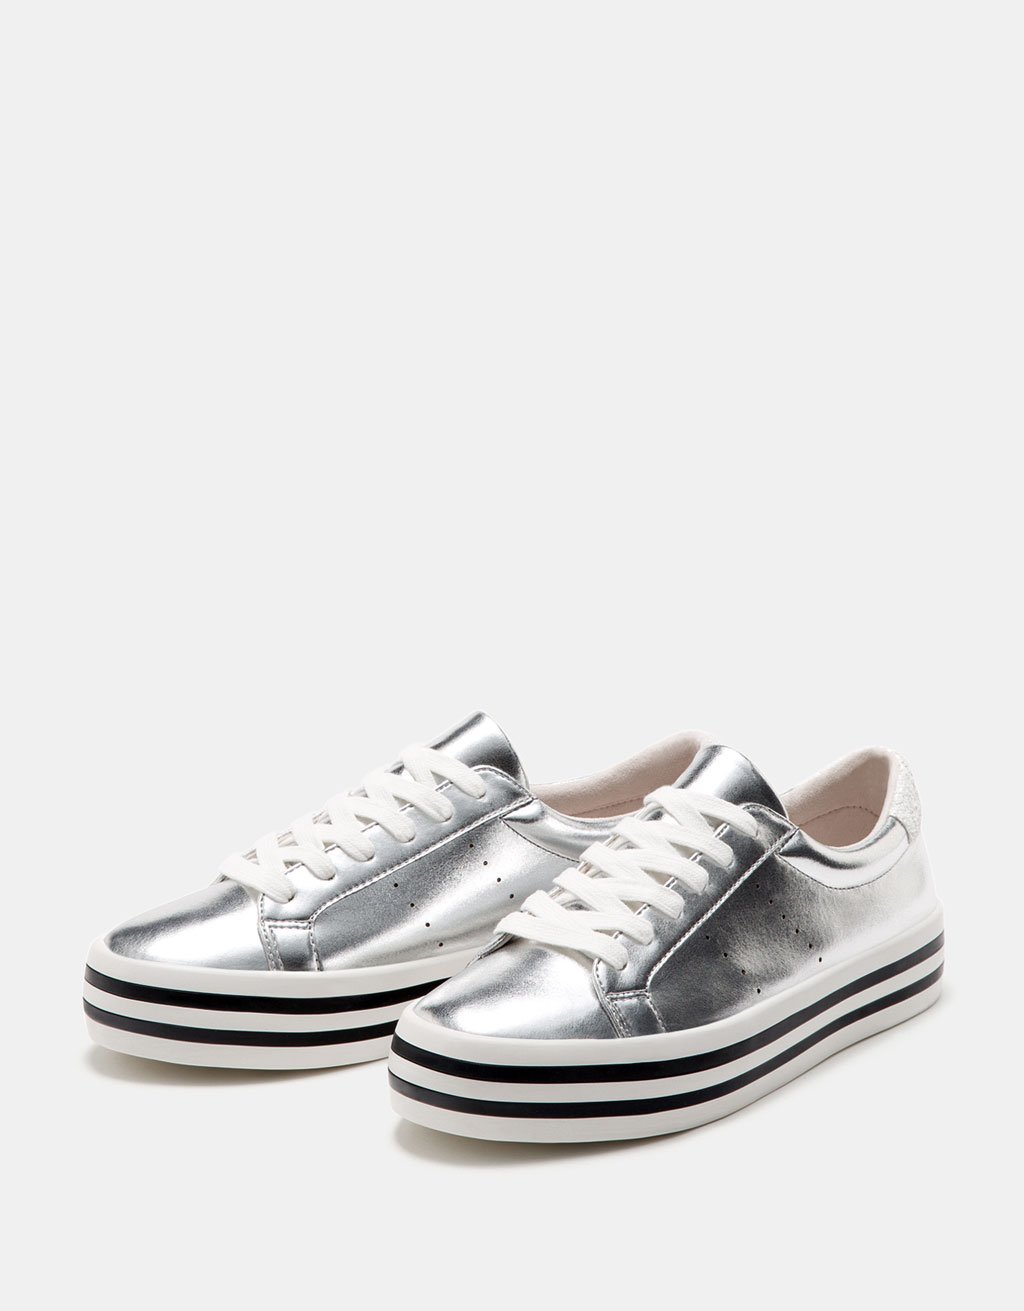 Metallic sneakers with contrasting sole